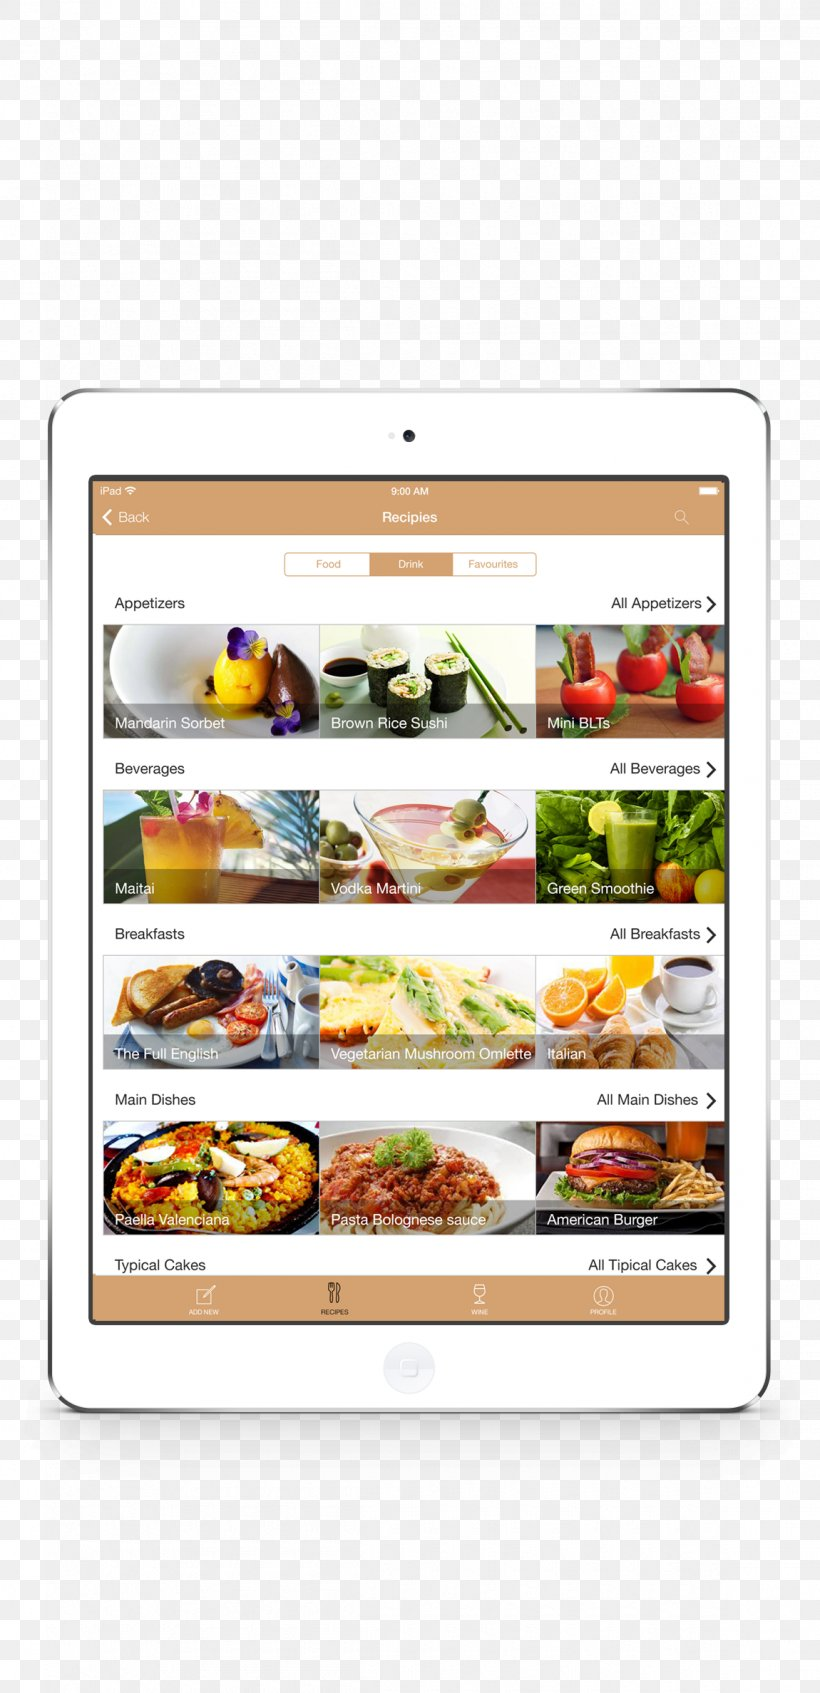 Fast Food Sushi Recipe Brown Rice, PNG, 1150x2375px, Fast Food, Brown Rice, Food, Recipe, Sushi Download Free